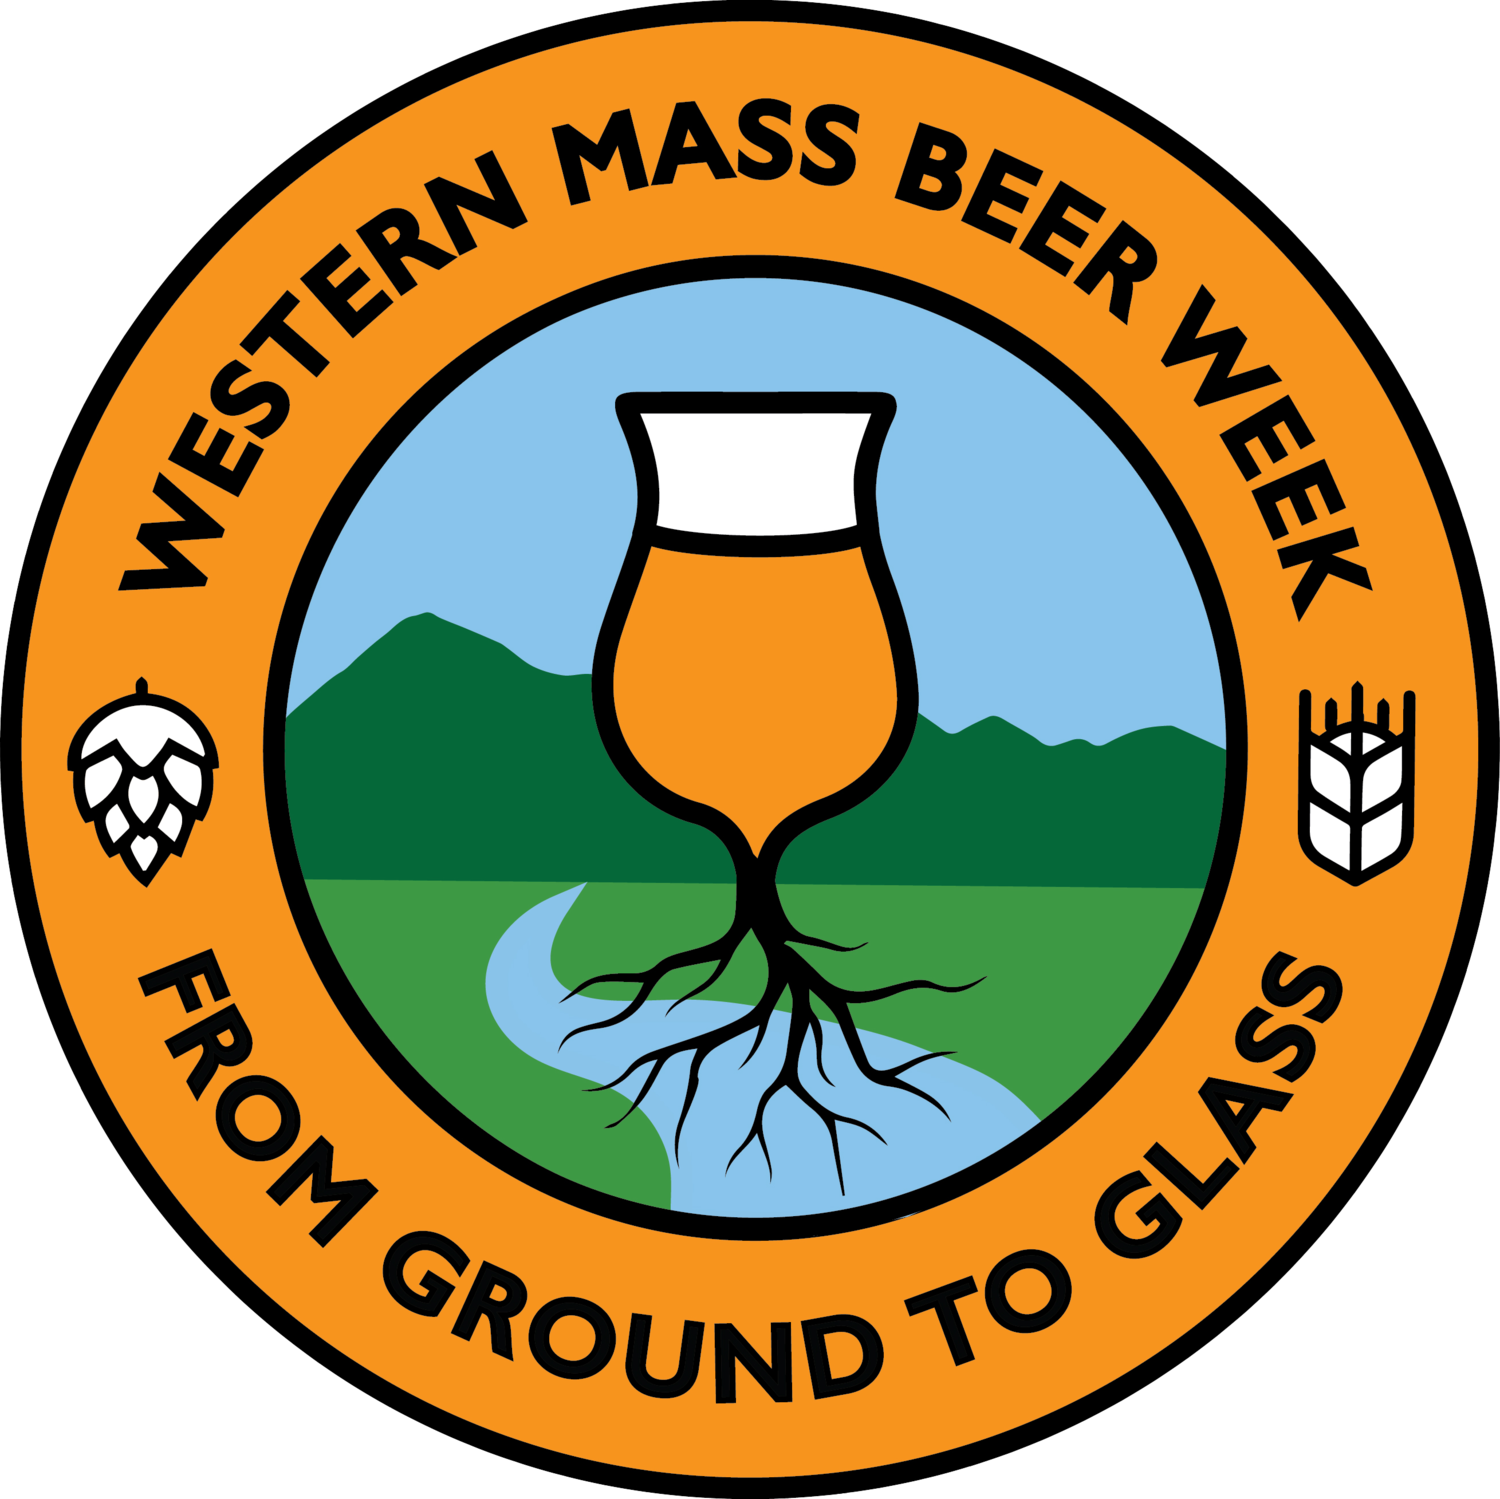 WESTERN MASS BEER WEEK